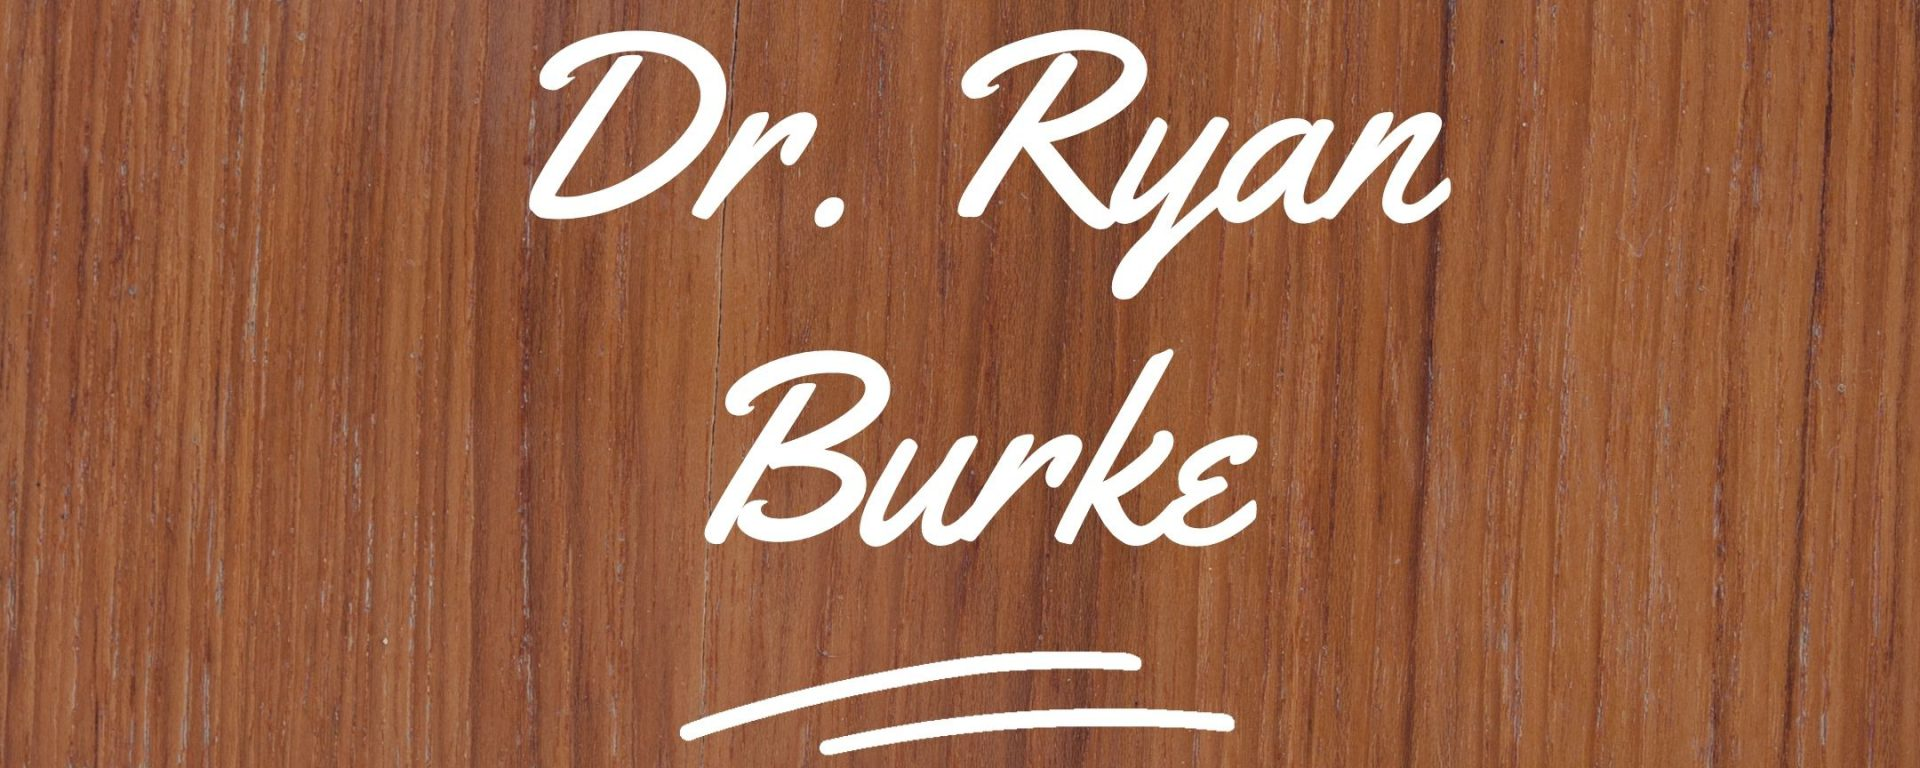 Honoring Our Own Awards Recognizes Adult Education Director Dr. Ryan Burke